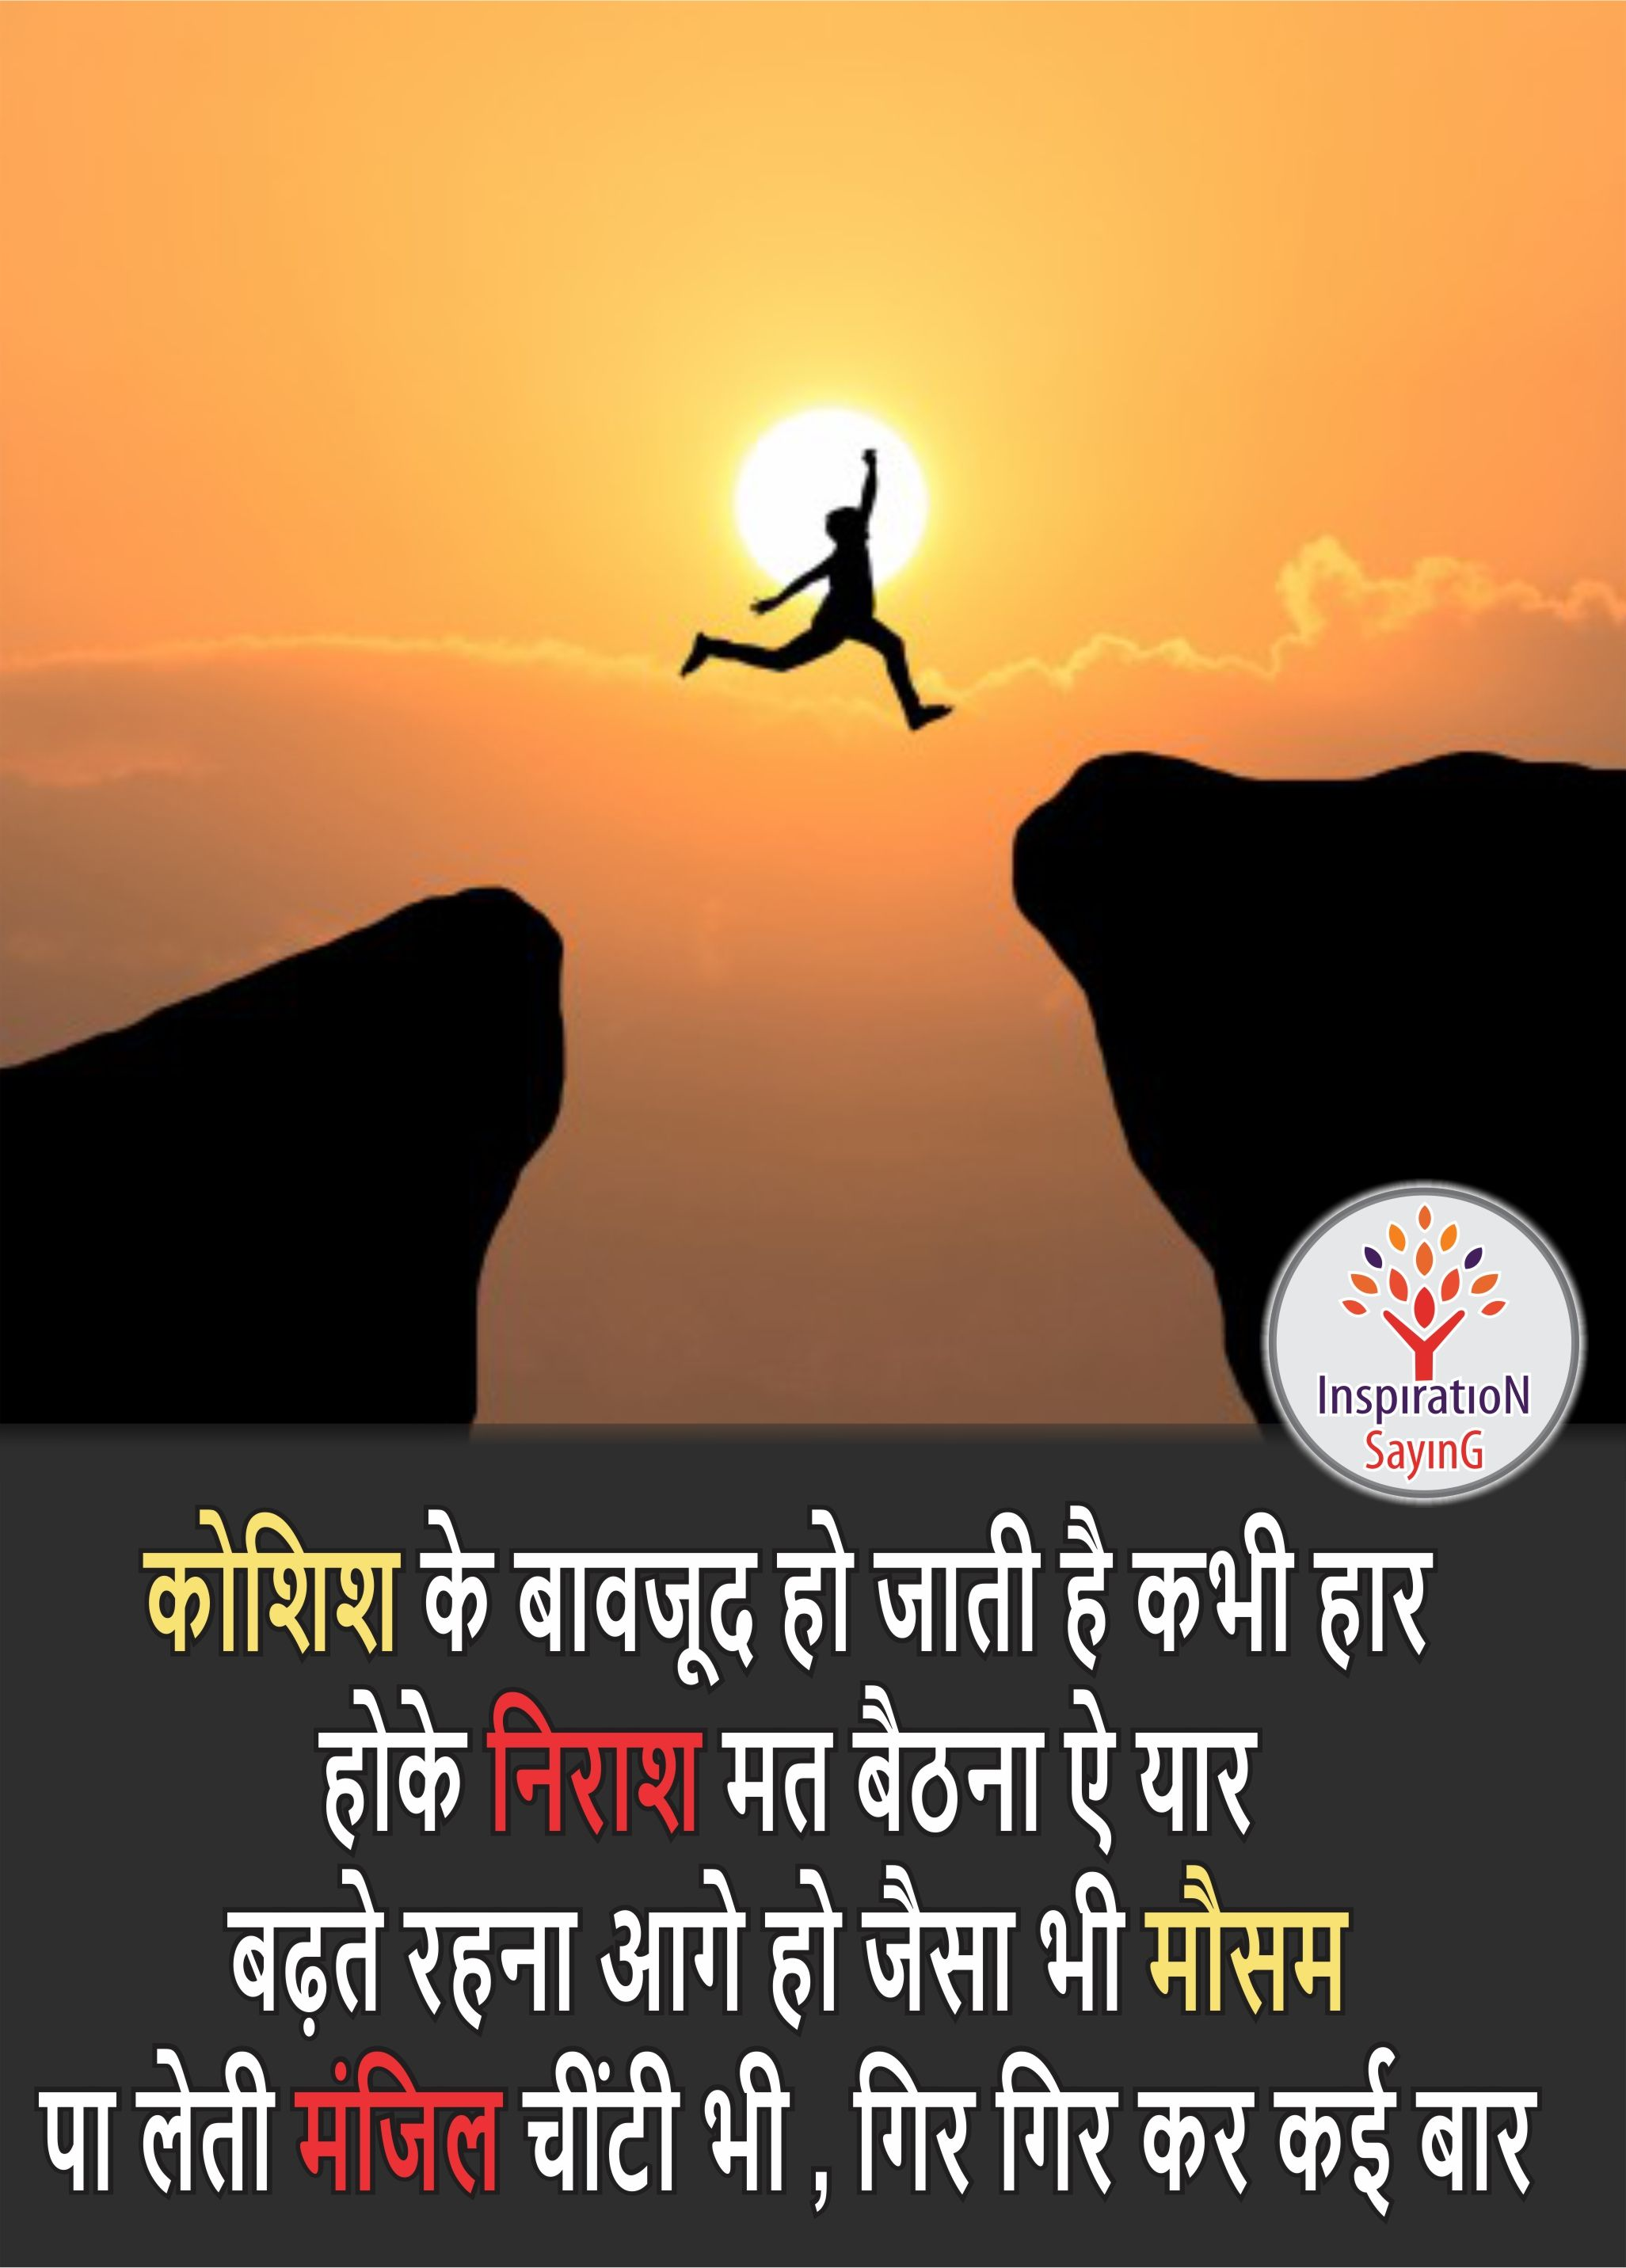 Citaten Voor Whatsapp : Top motivational quotes in hindi hindi shayari whatsapp status